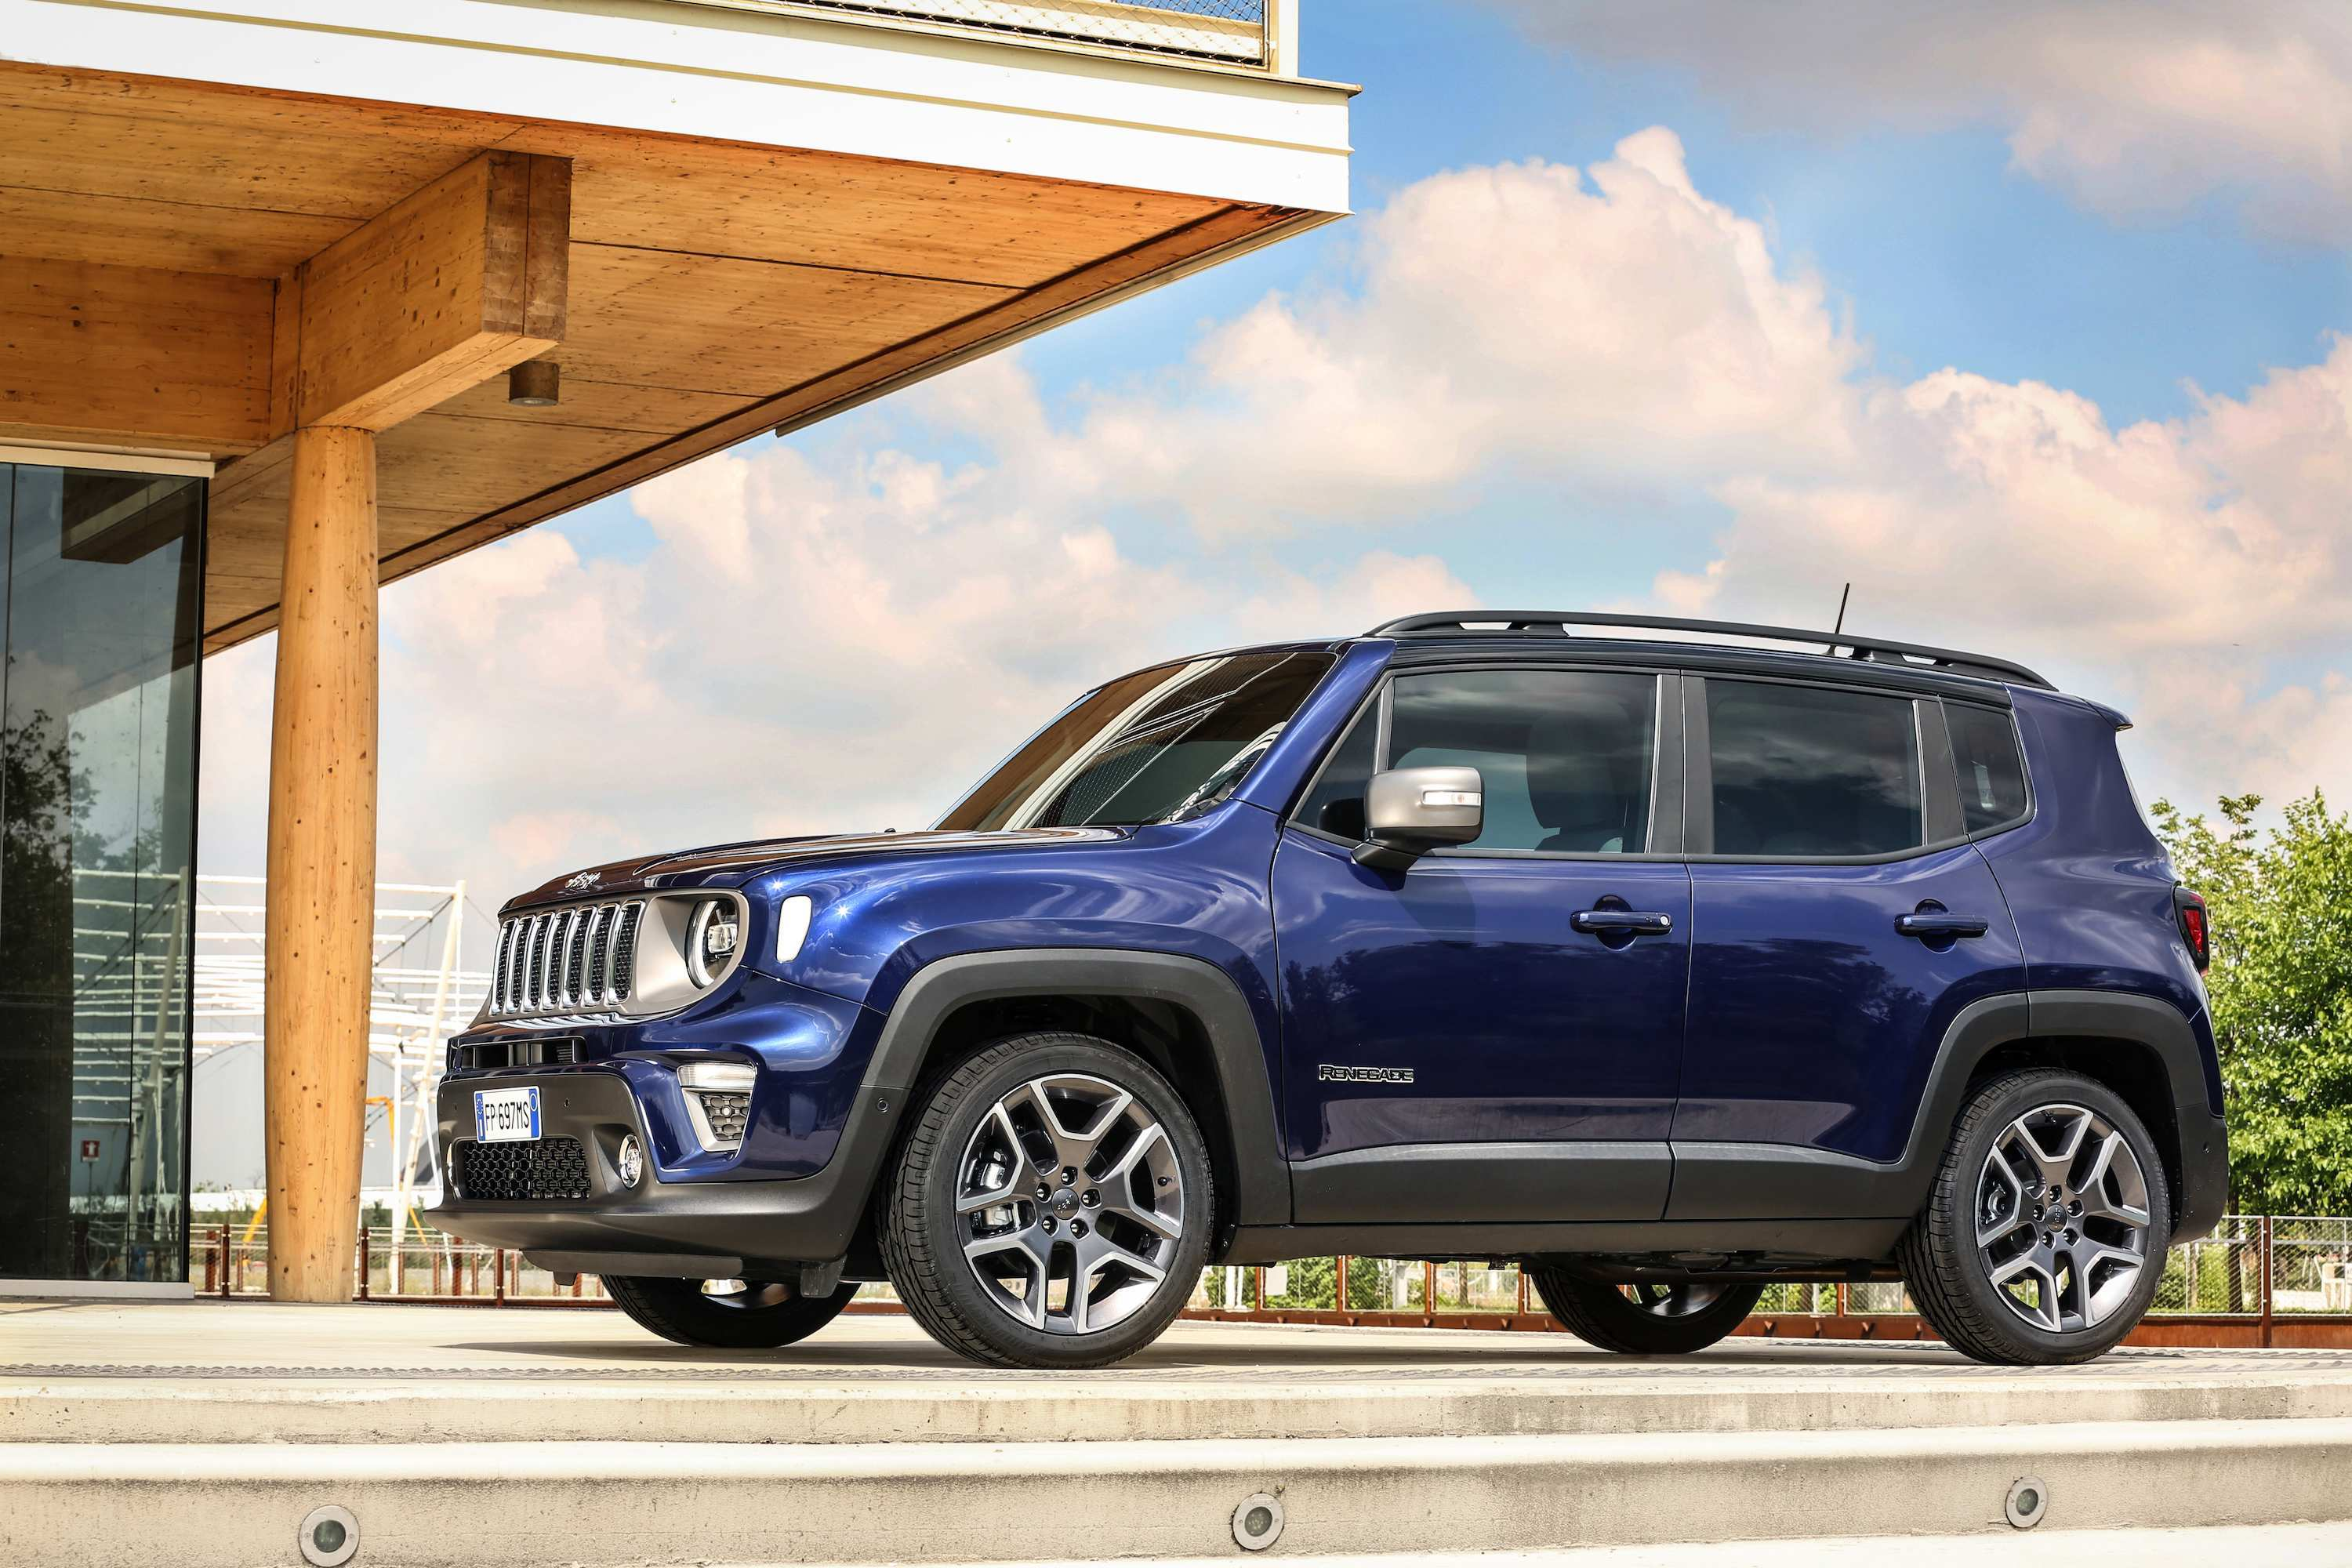 96 Best Review 2020 Jeep Renegade Specs by 2020 Jeep Renegade